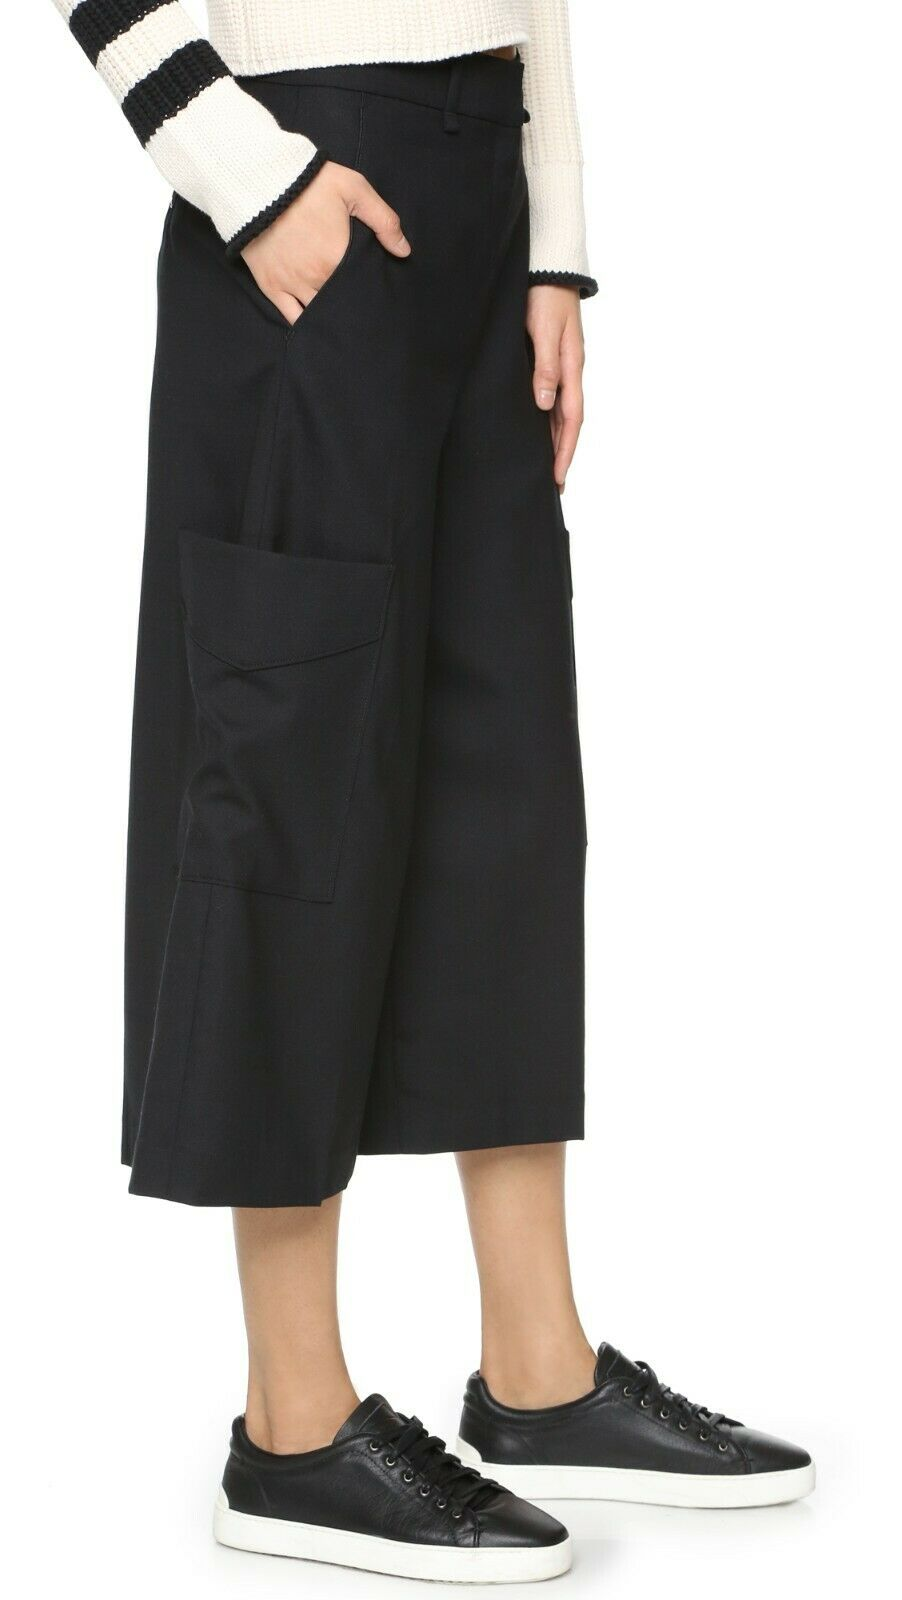 Rag & Bone Ellis Womens 4 Black Culottes Wide Leg Pants Trousers Cargo Pockets